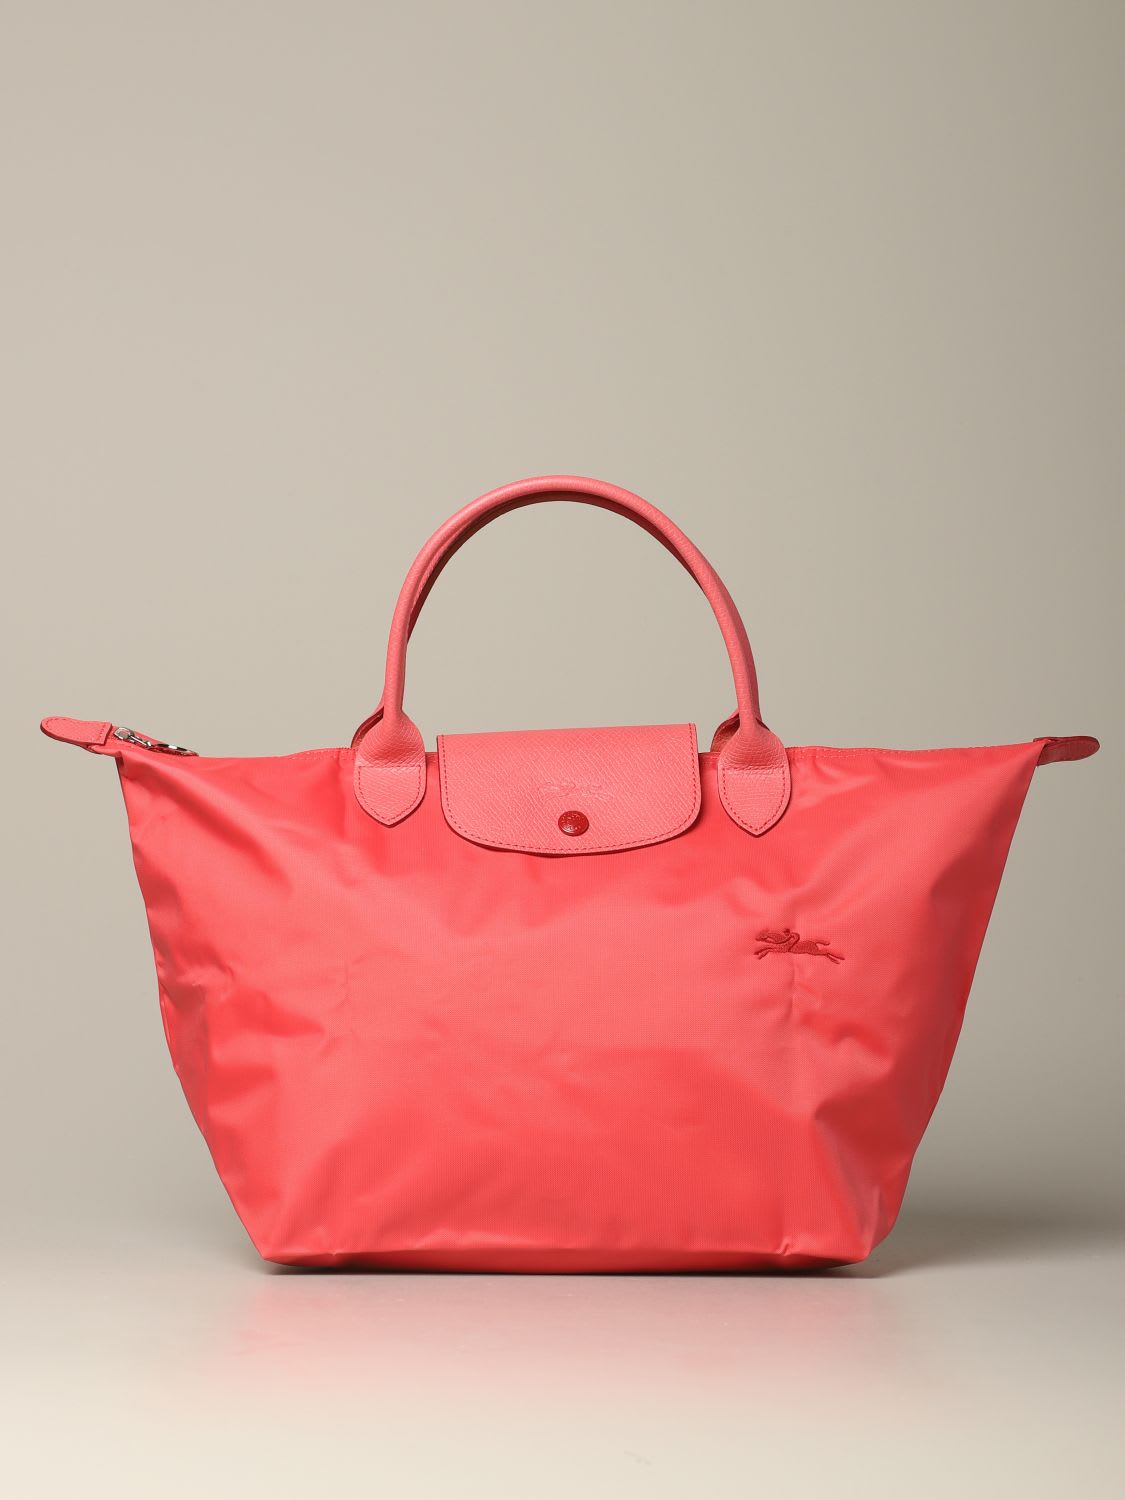 Longchamp Bag In Nylon With Embroidered Logo In Geranium